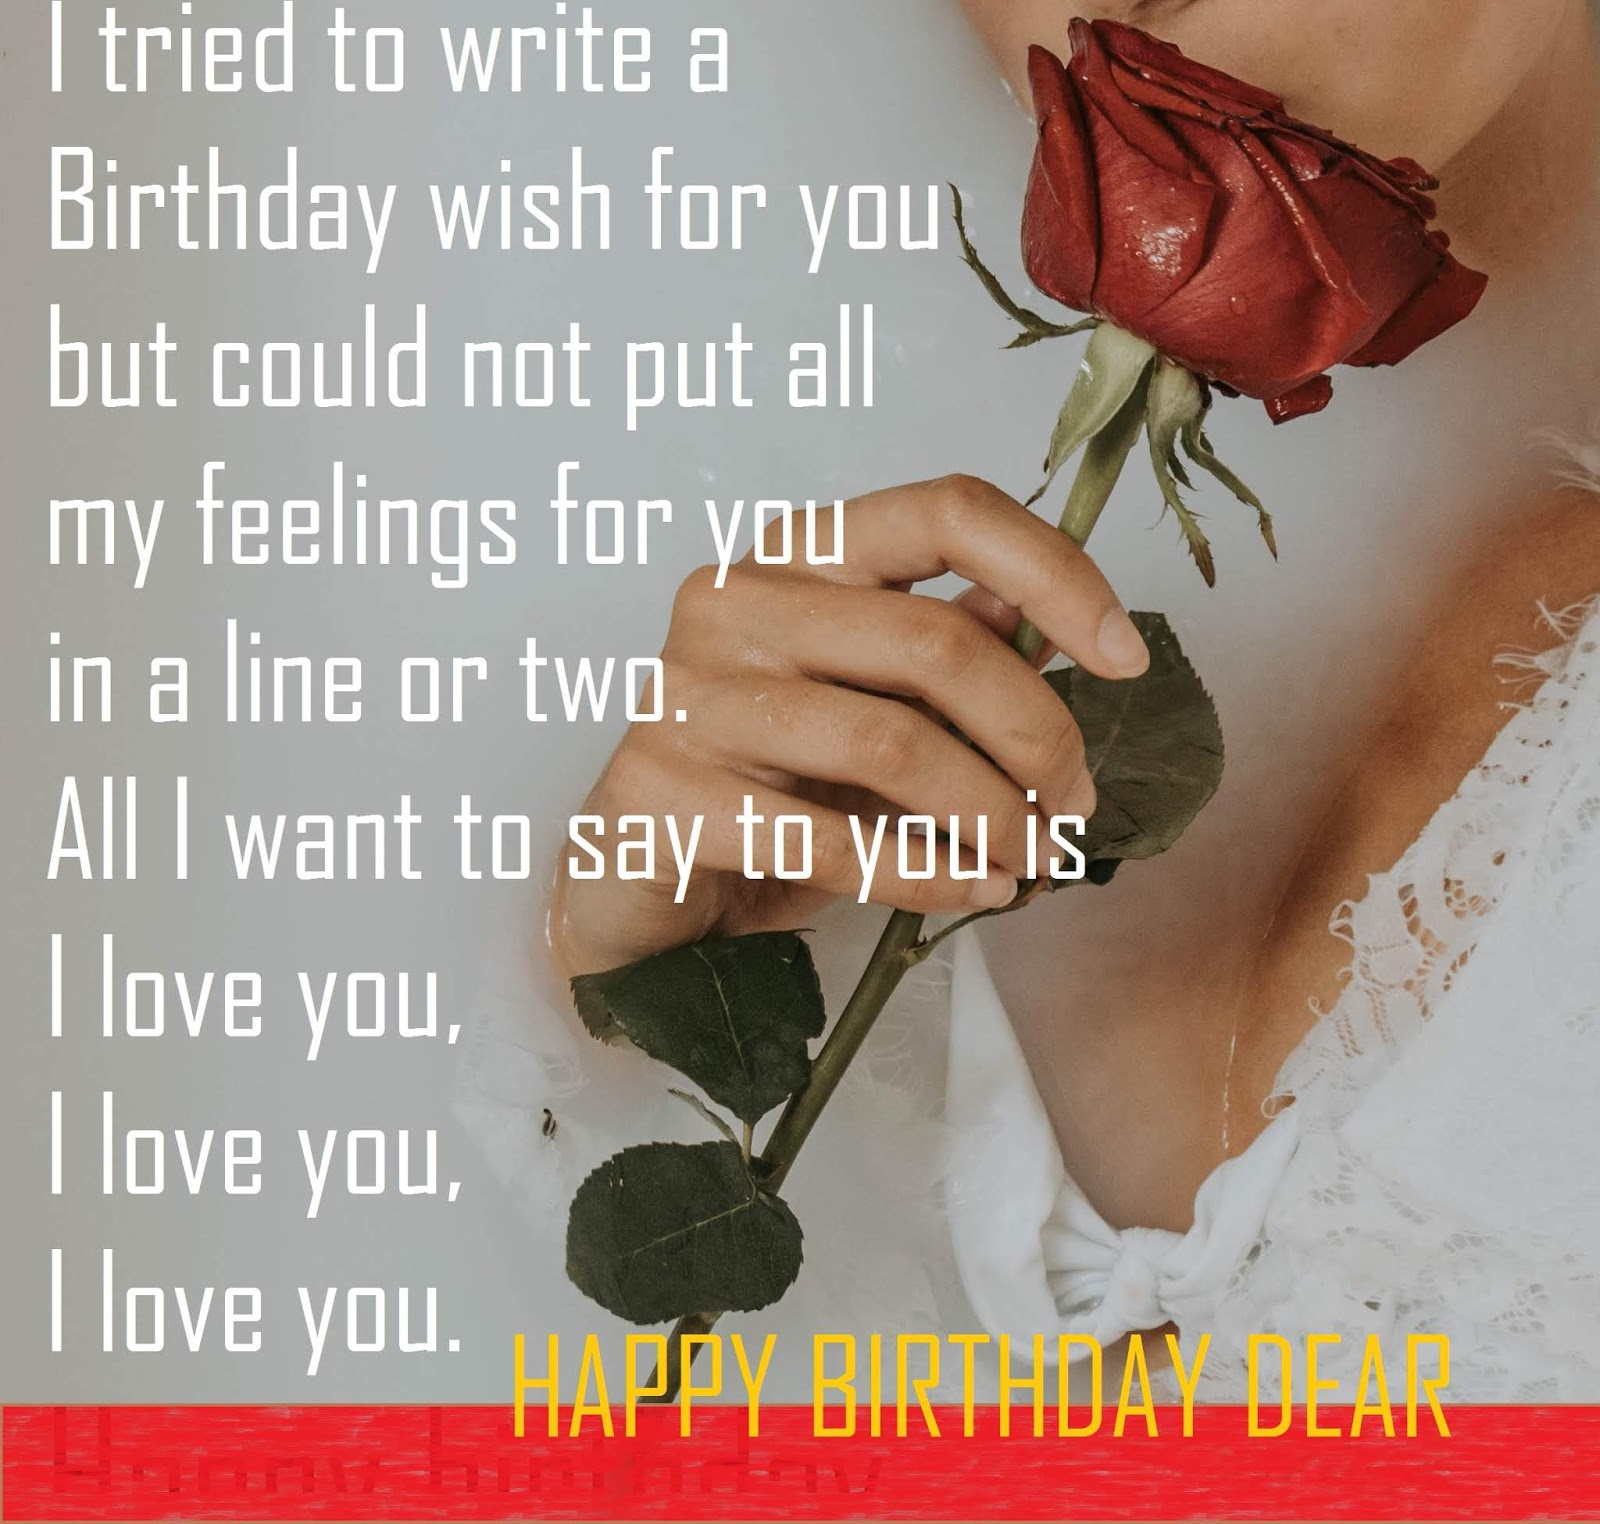 I Tried To Write A Birthday Wish For You But Could Not Put All M Feelings In Line Or Two Want Say Is